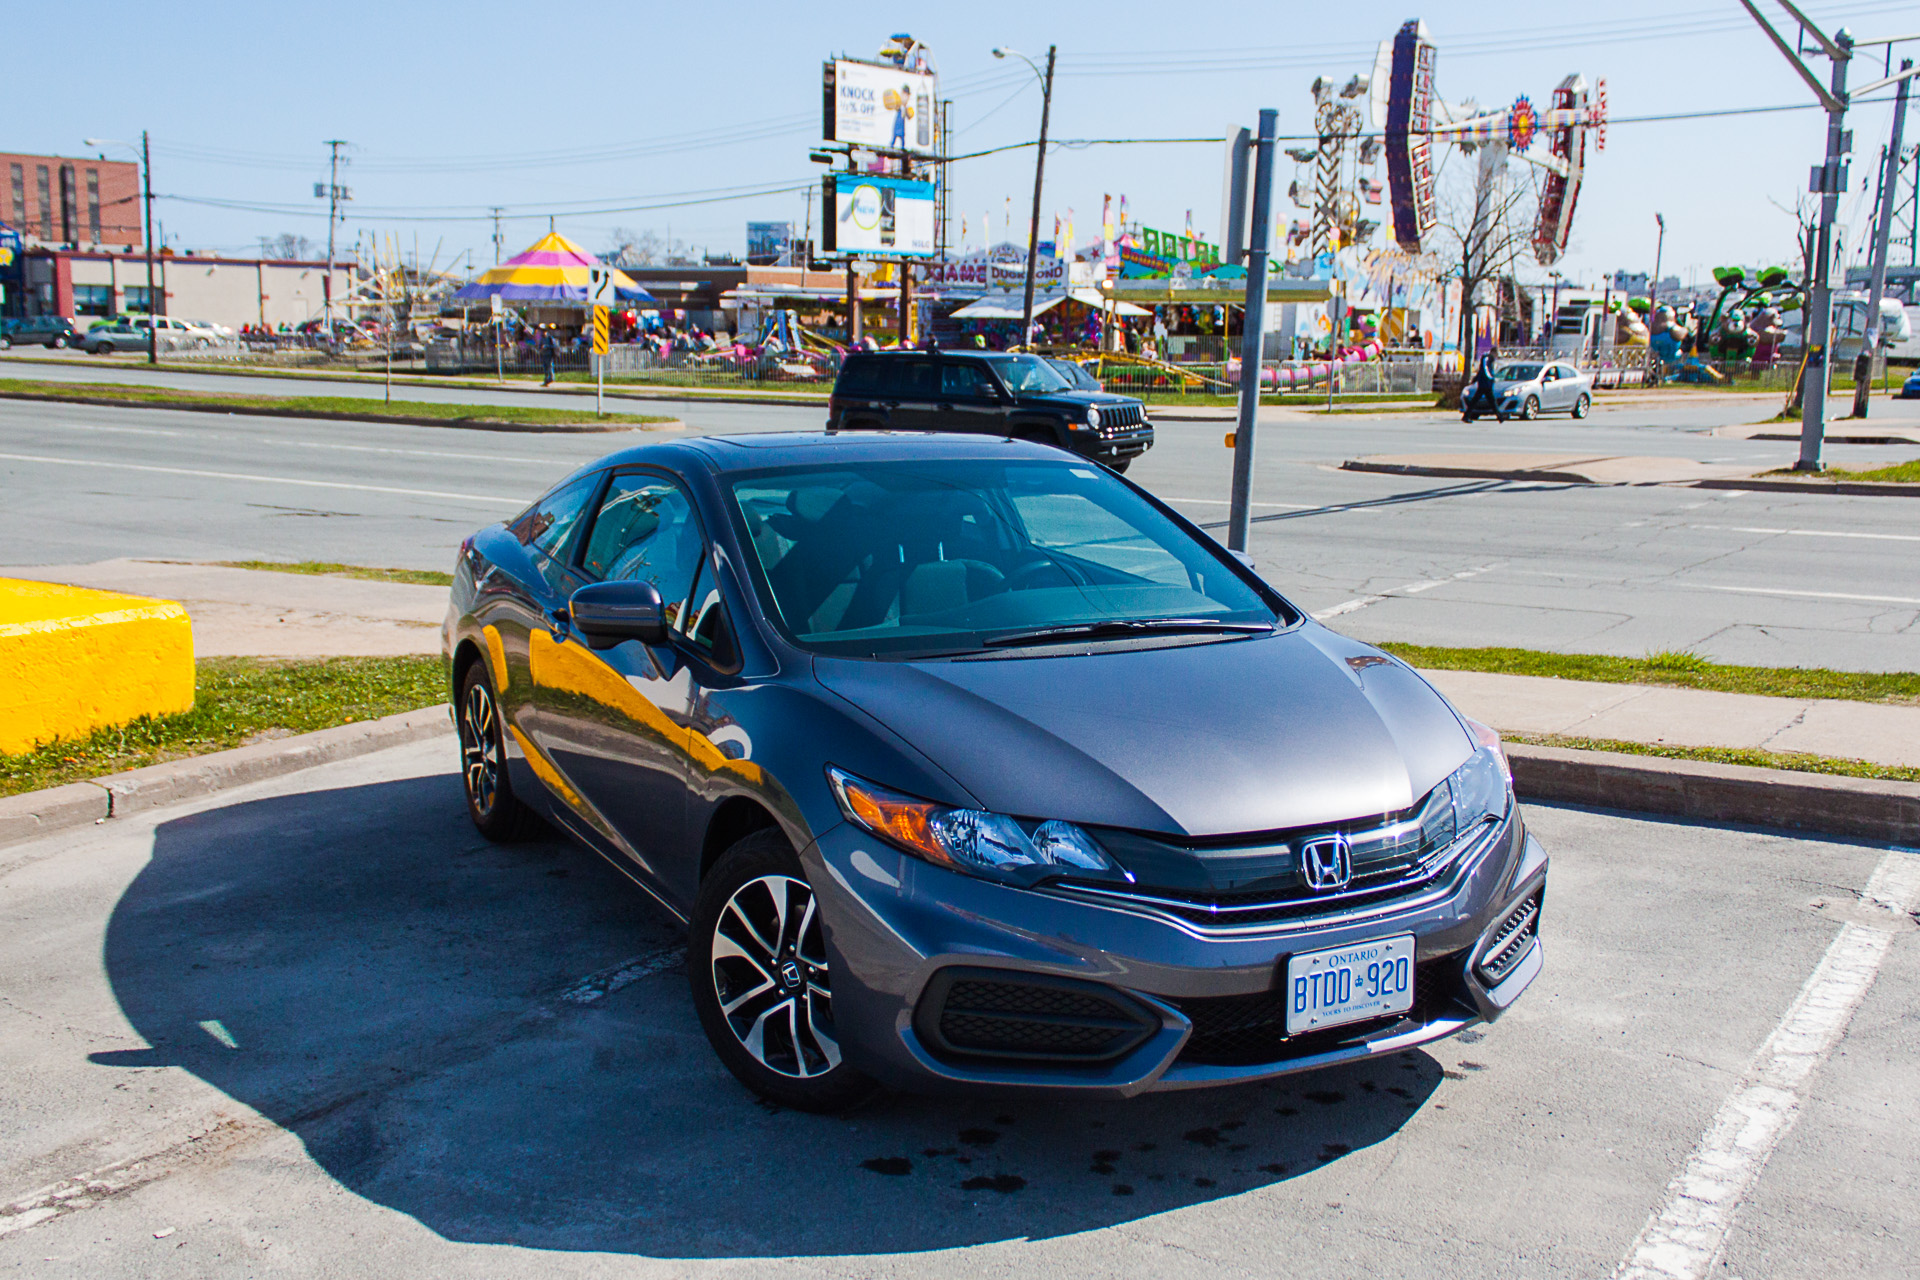 2014 Honda Civic Coupe (15 of 29) - The Truth About Cars